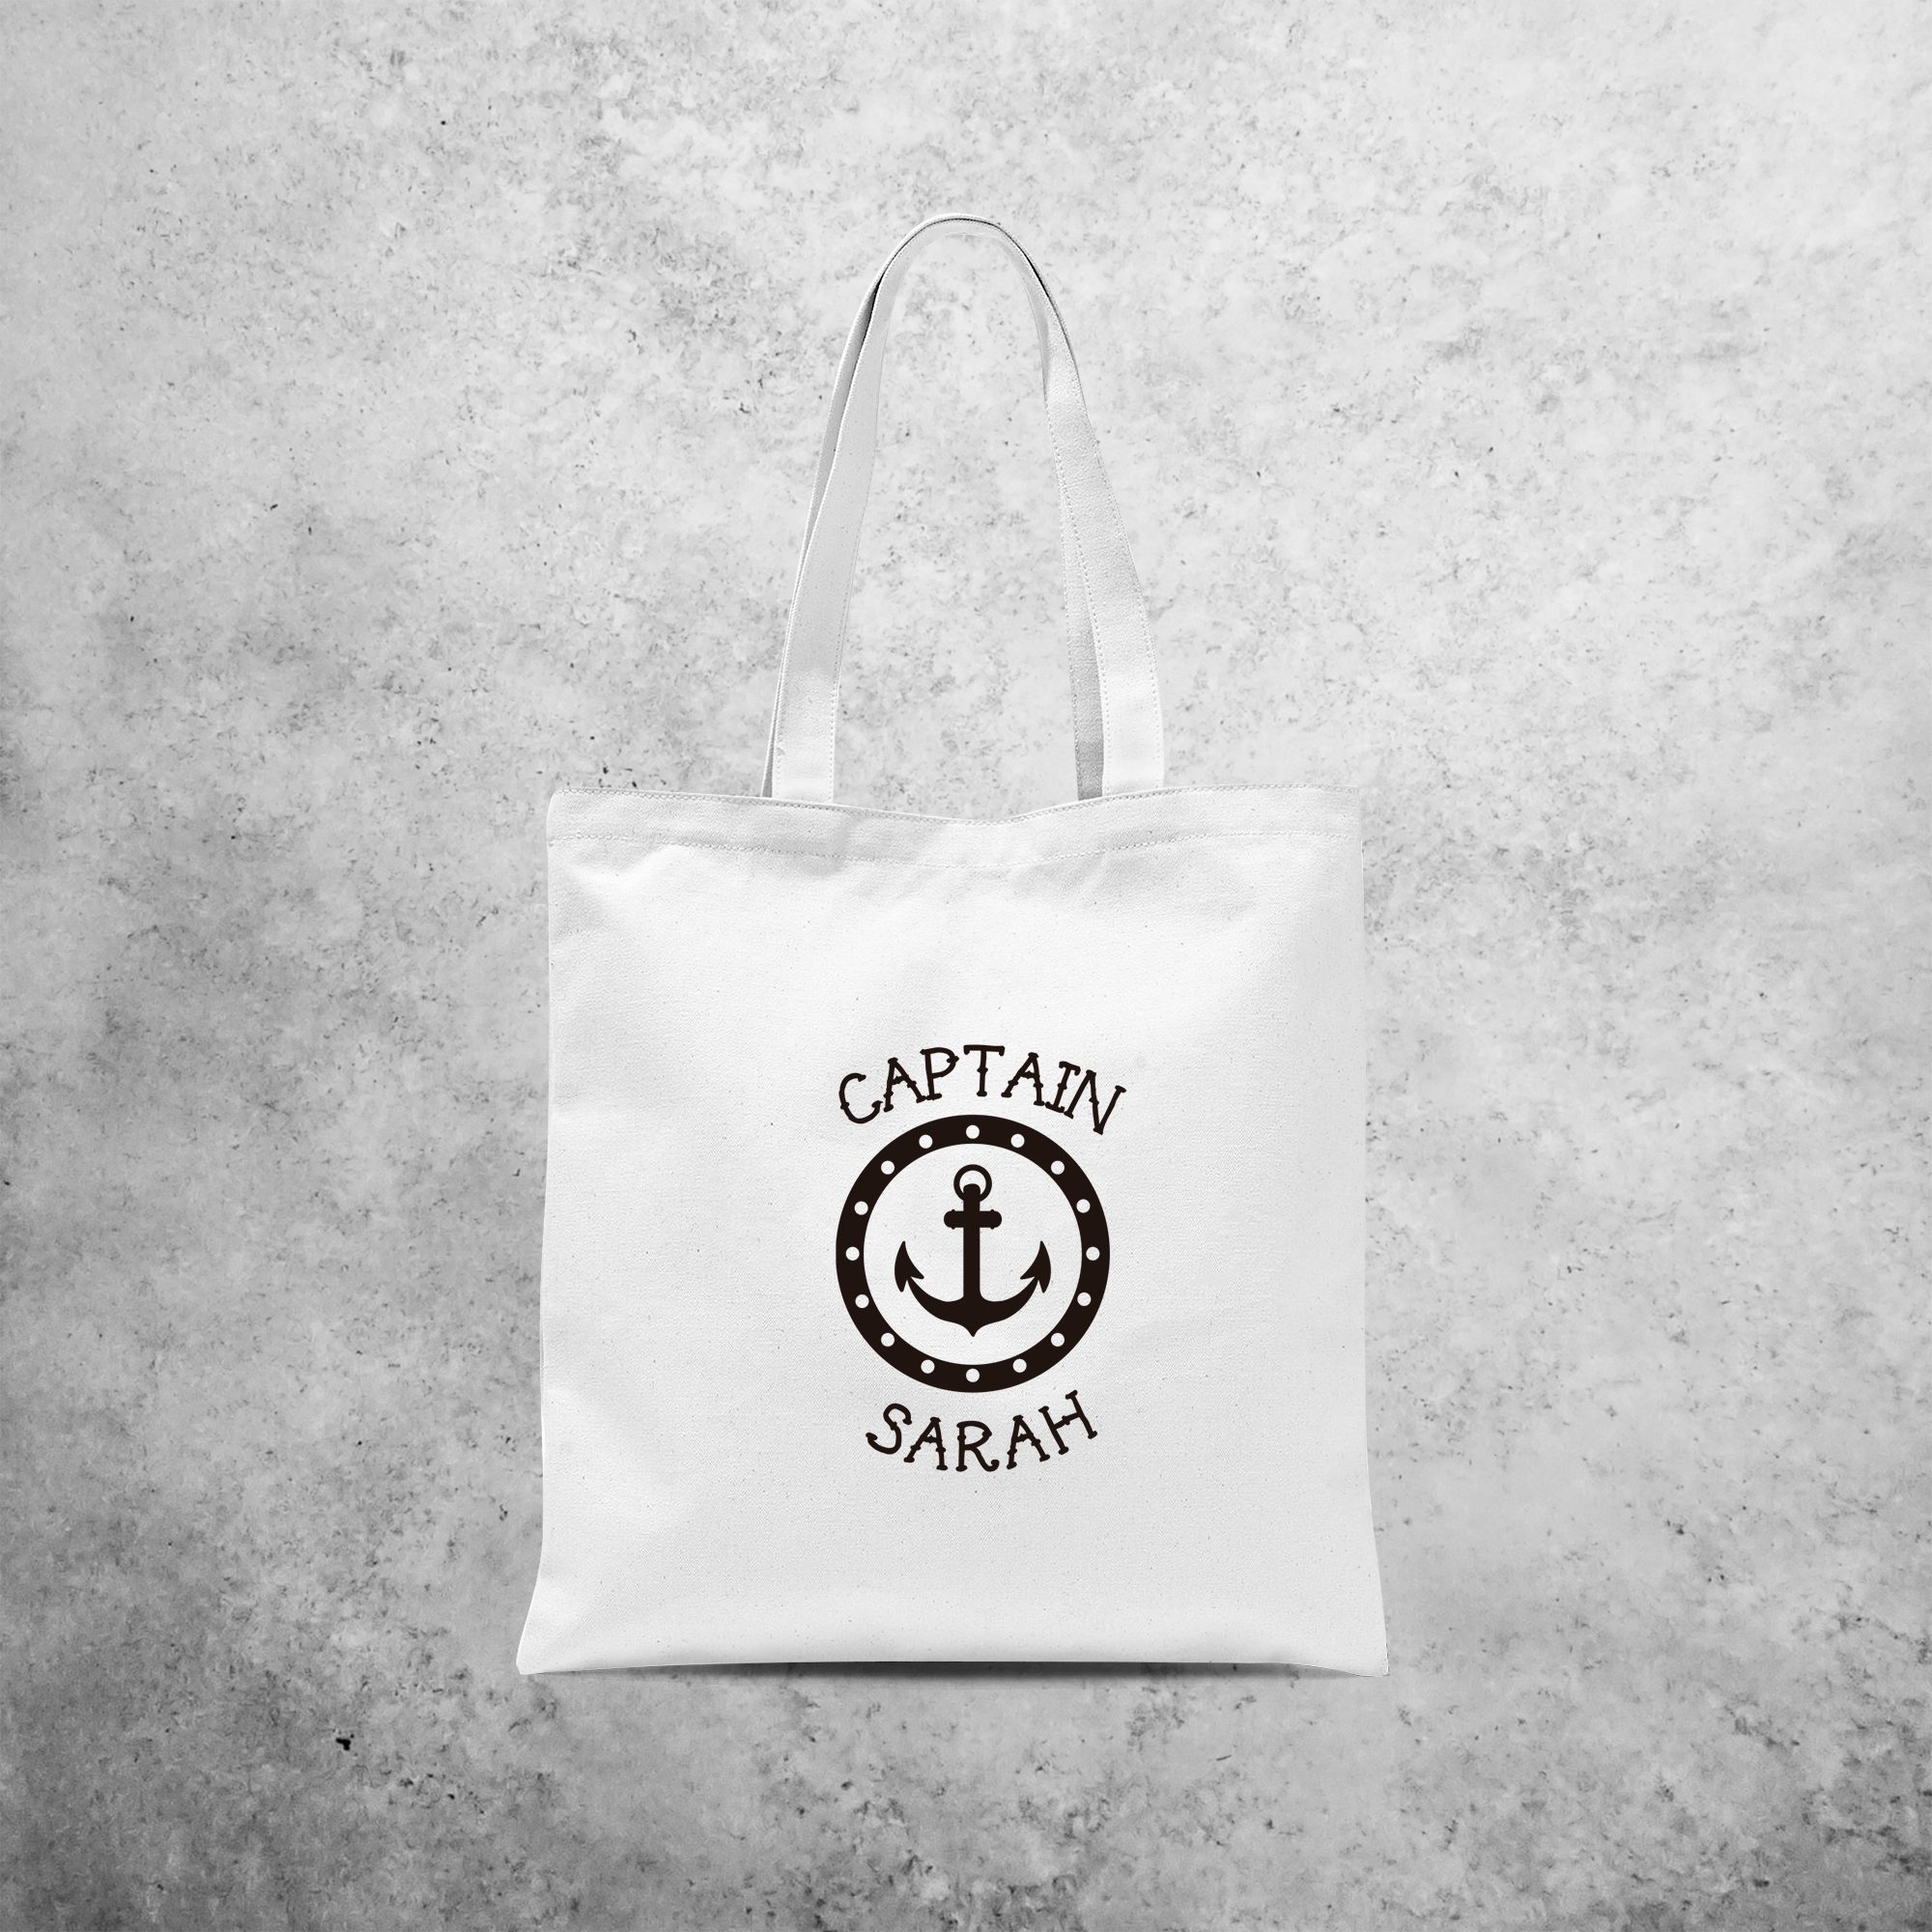 'Captain' tote bag